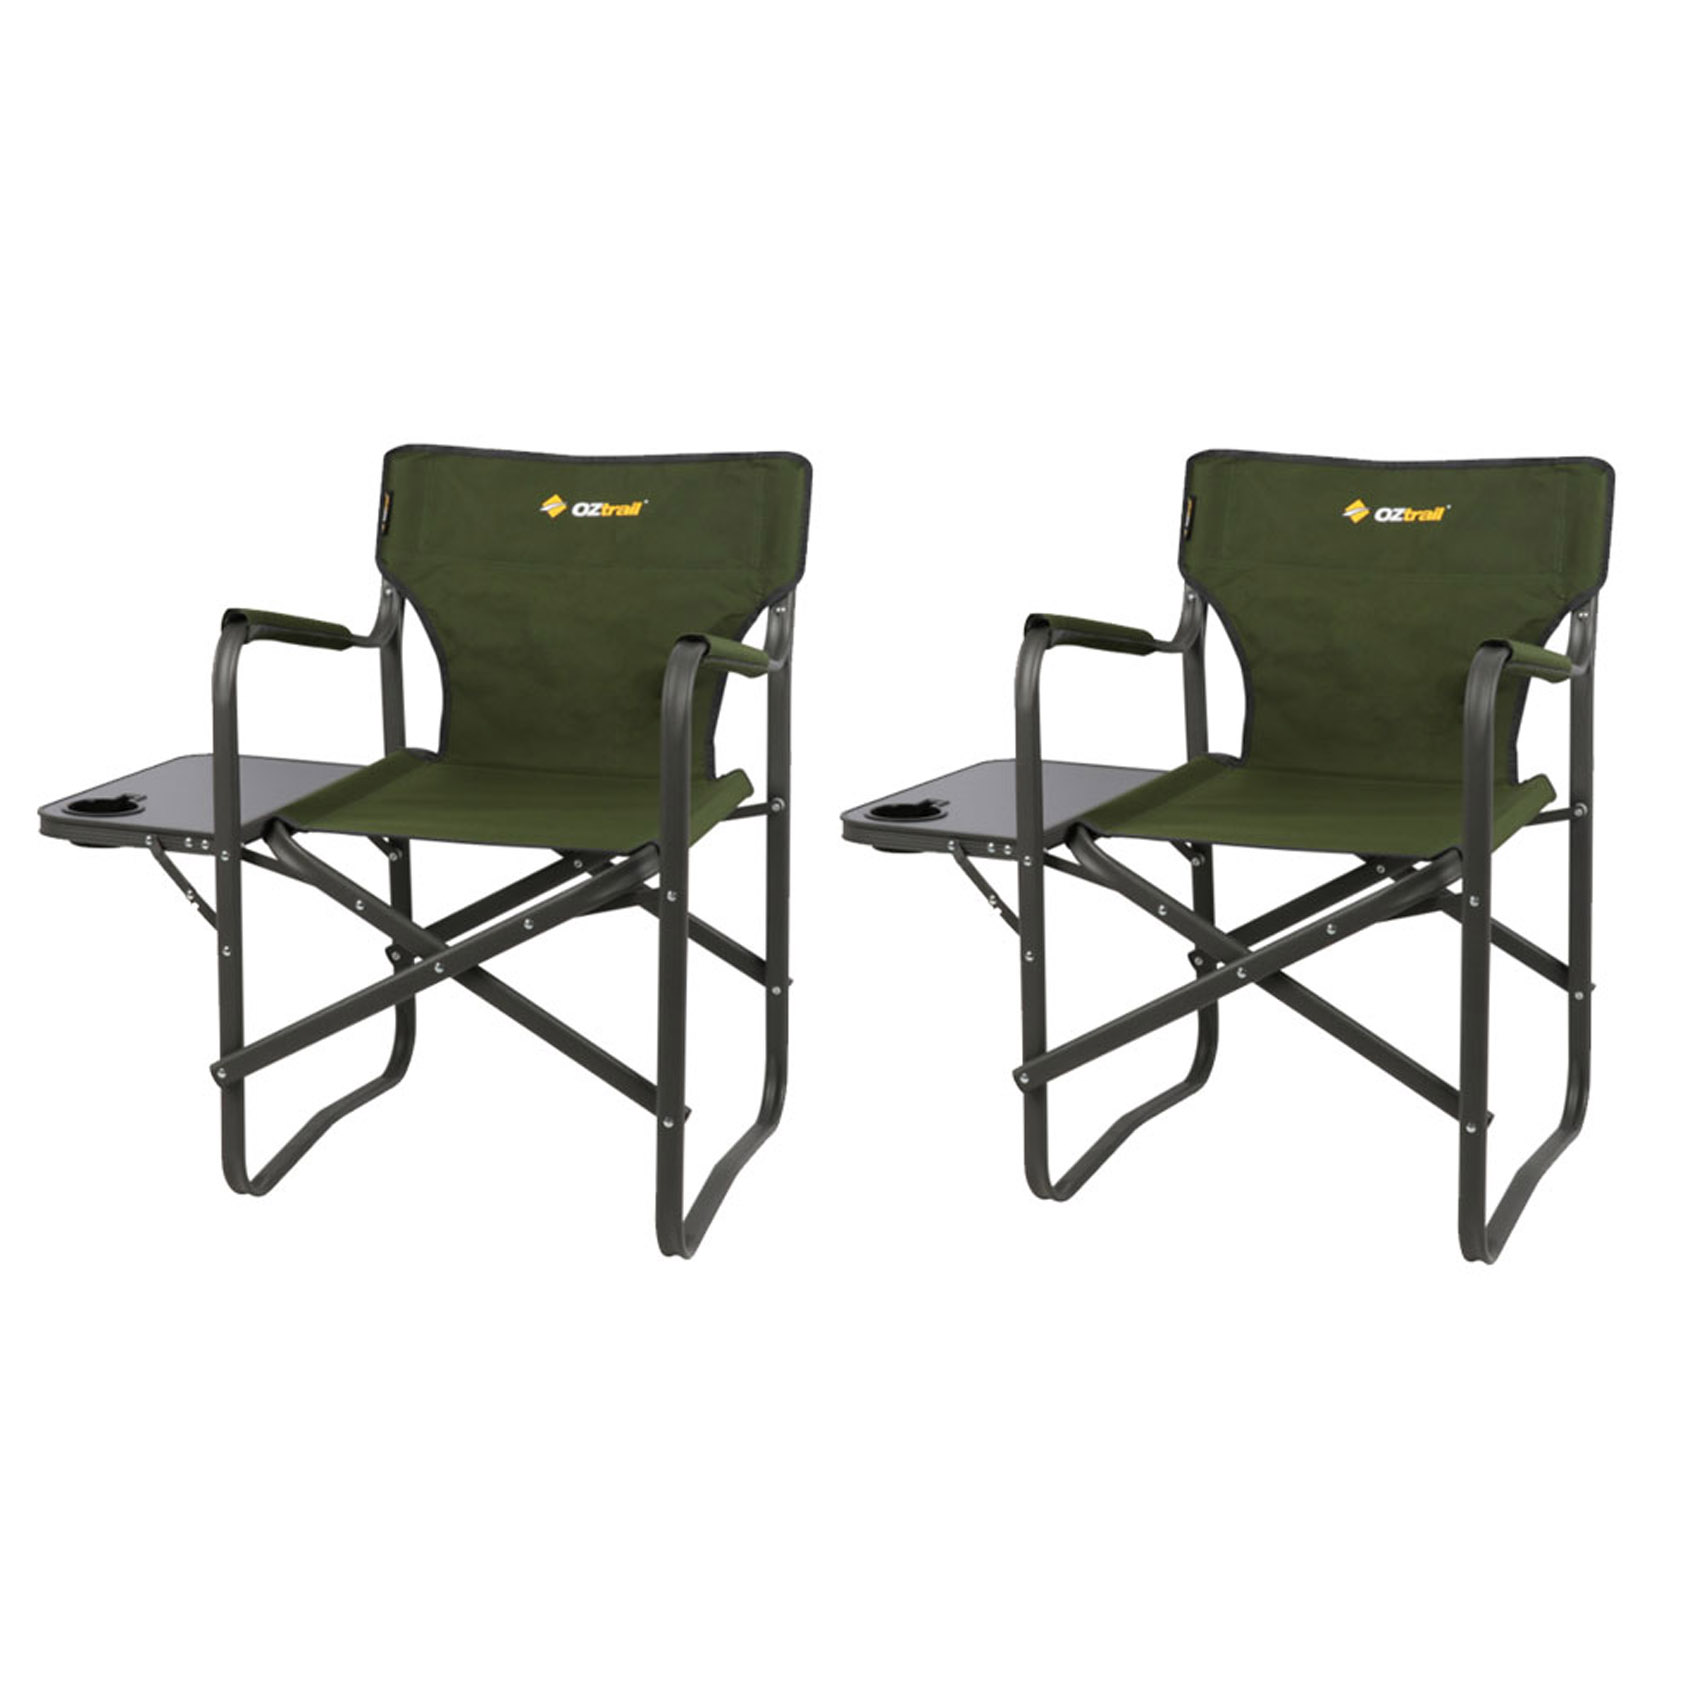 Folding Camp Chair With Side Table Details About 2 X Oztrail Directors Folding Classic Camping Chairs With Side Table Outdoor